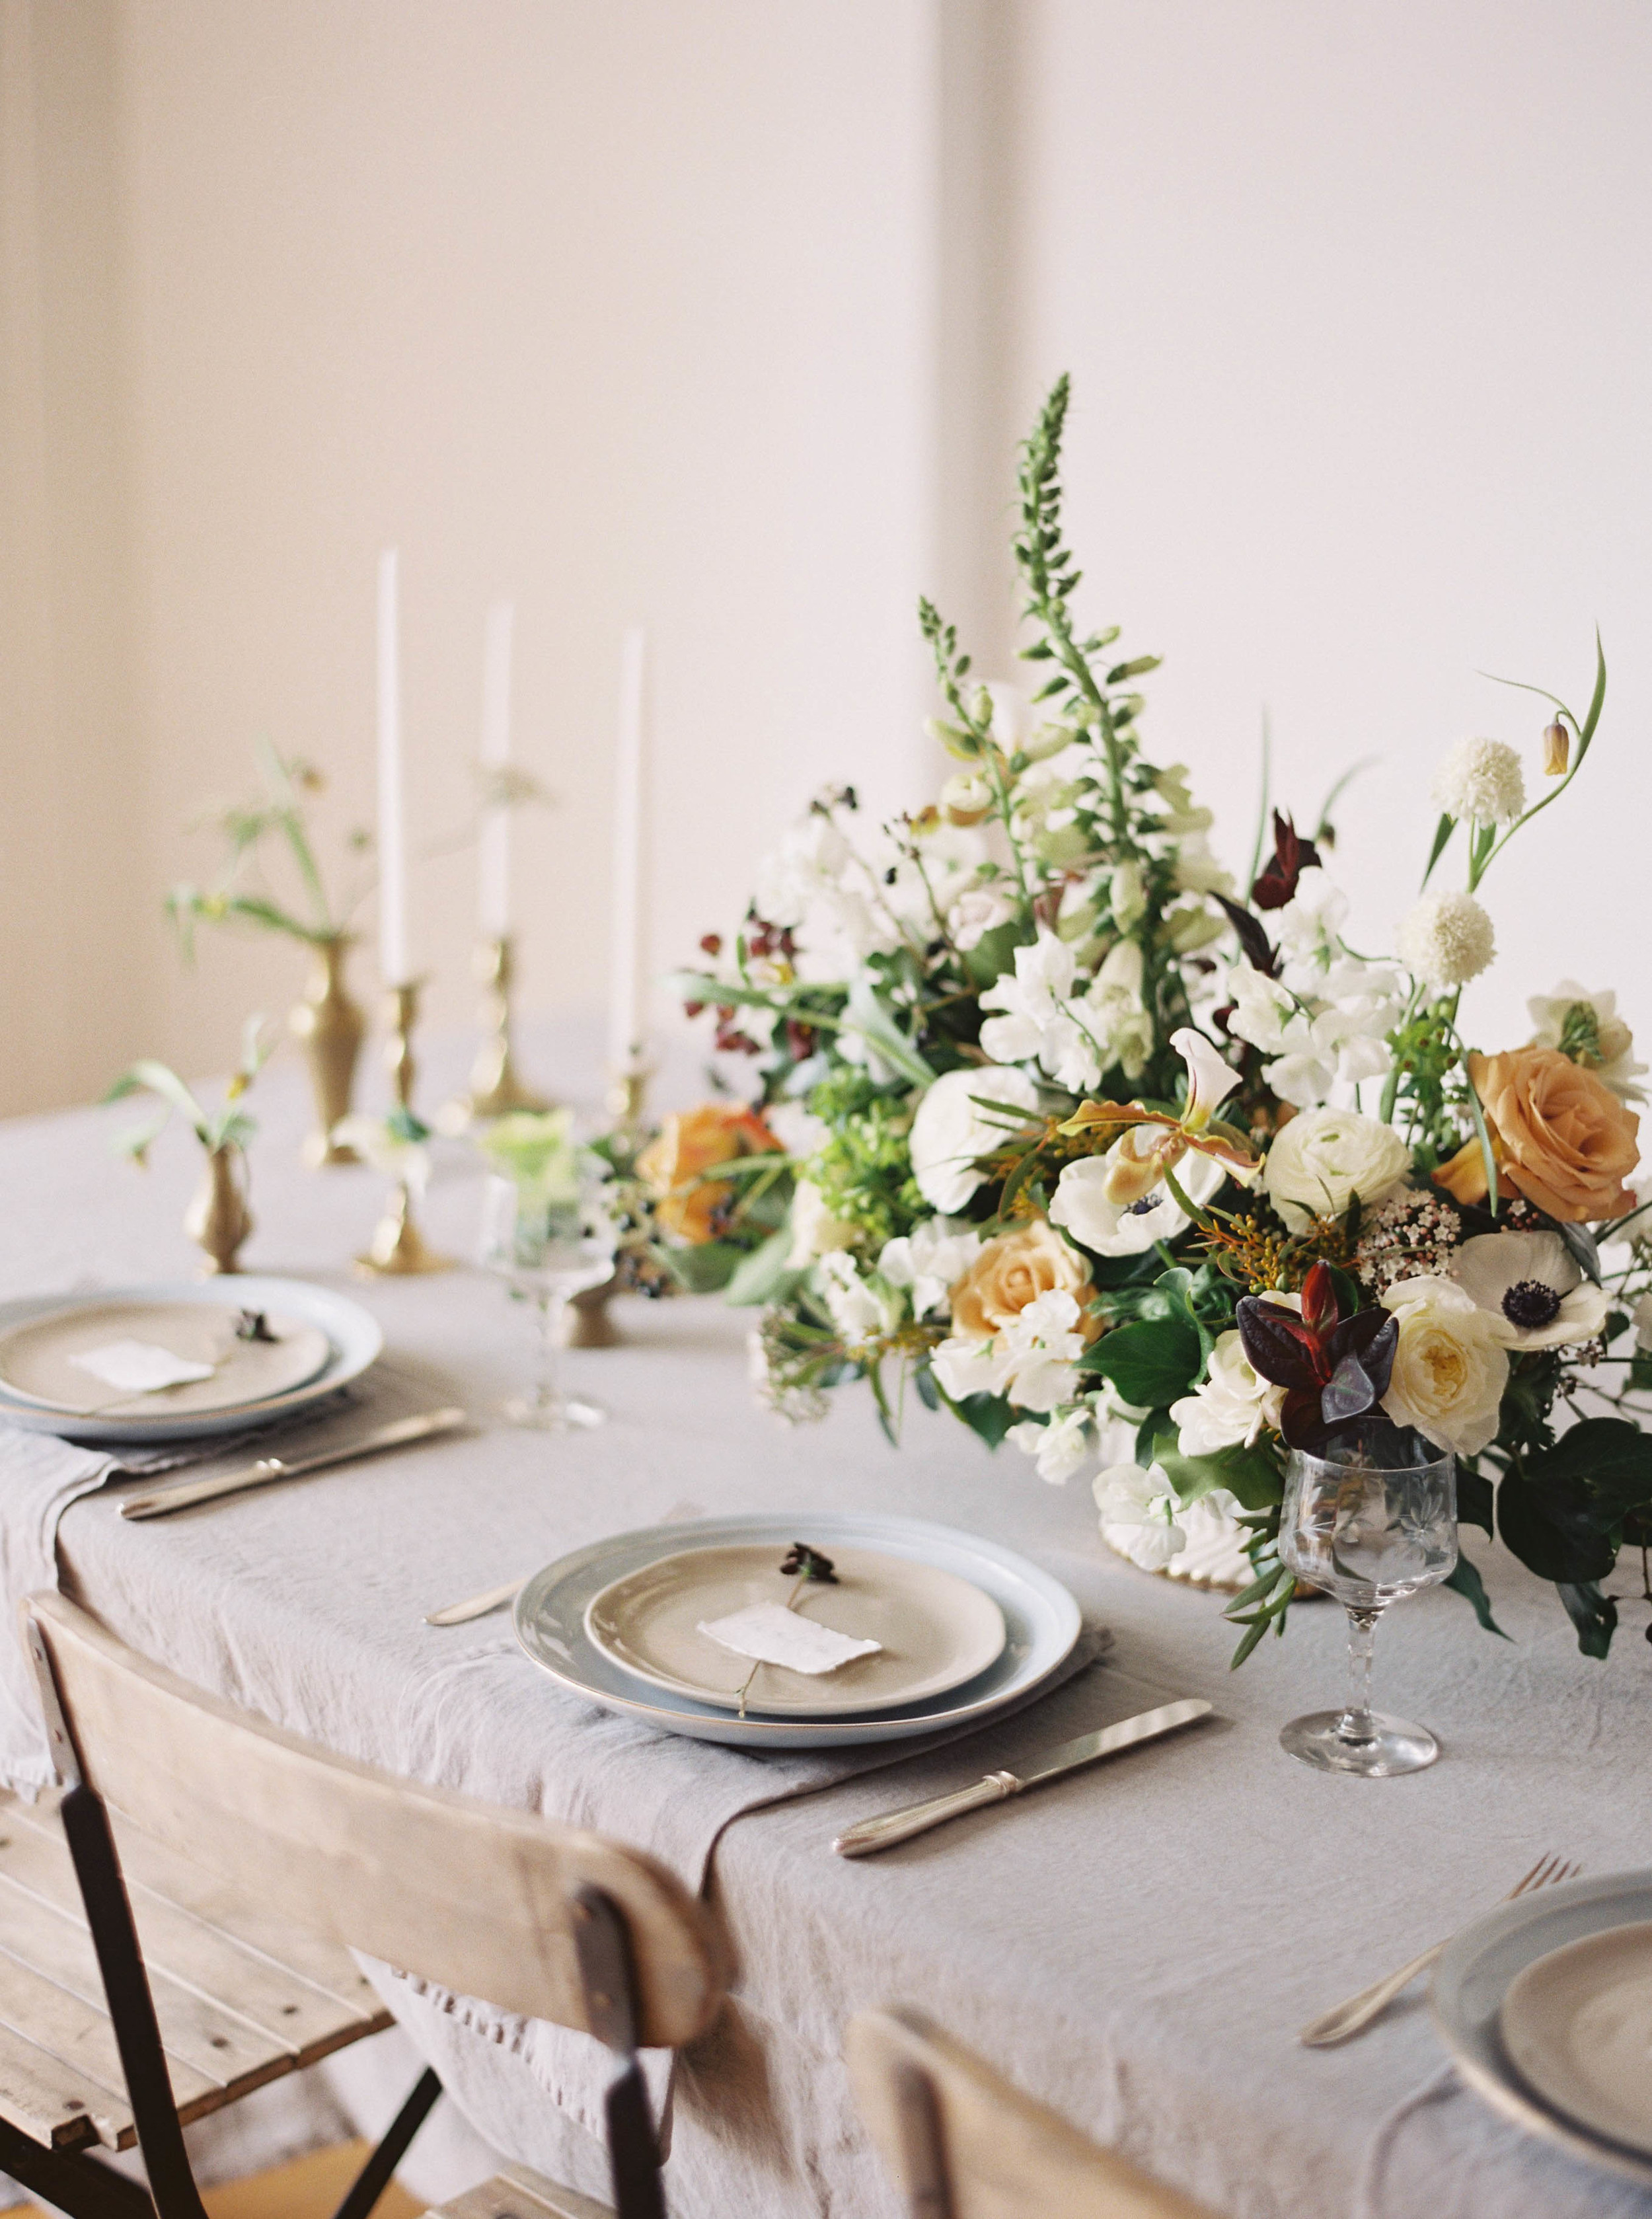 Meghan Mehan Photography | Fine Art Film Photography | Destination Wedding Photographer | California | San Francisco | Napa | Sonoma | Santa Barbara - 002.jpg